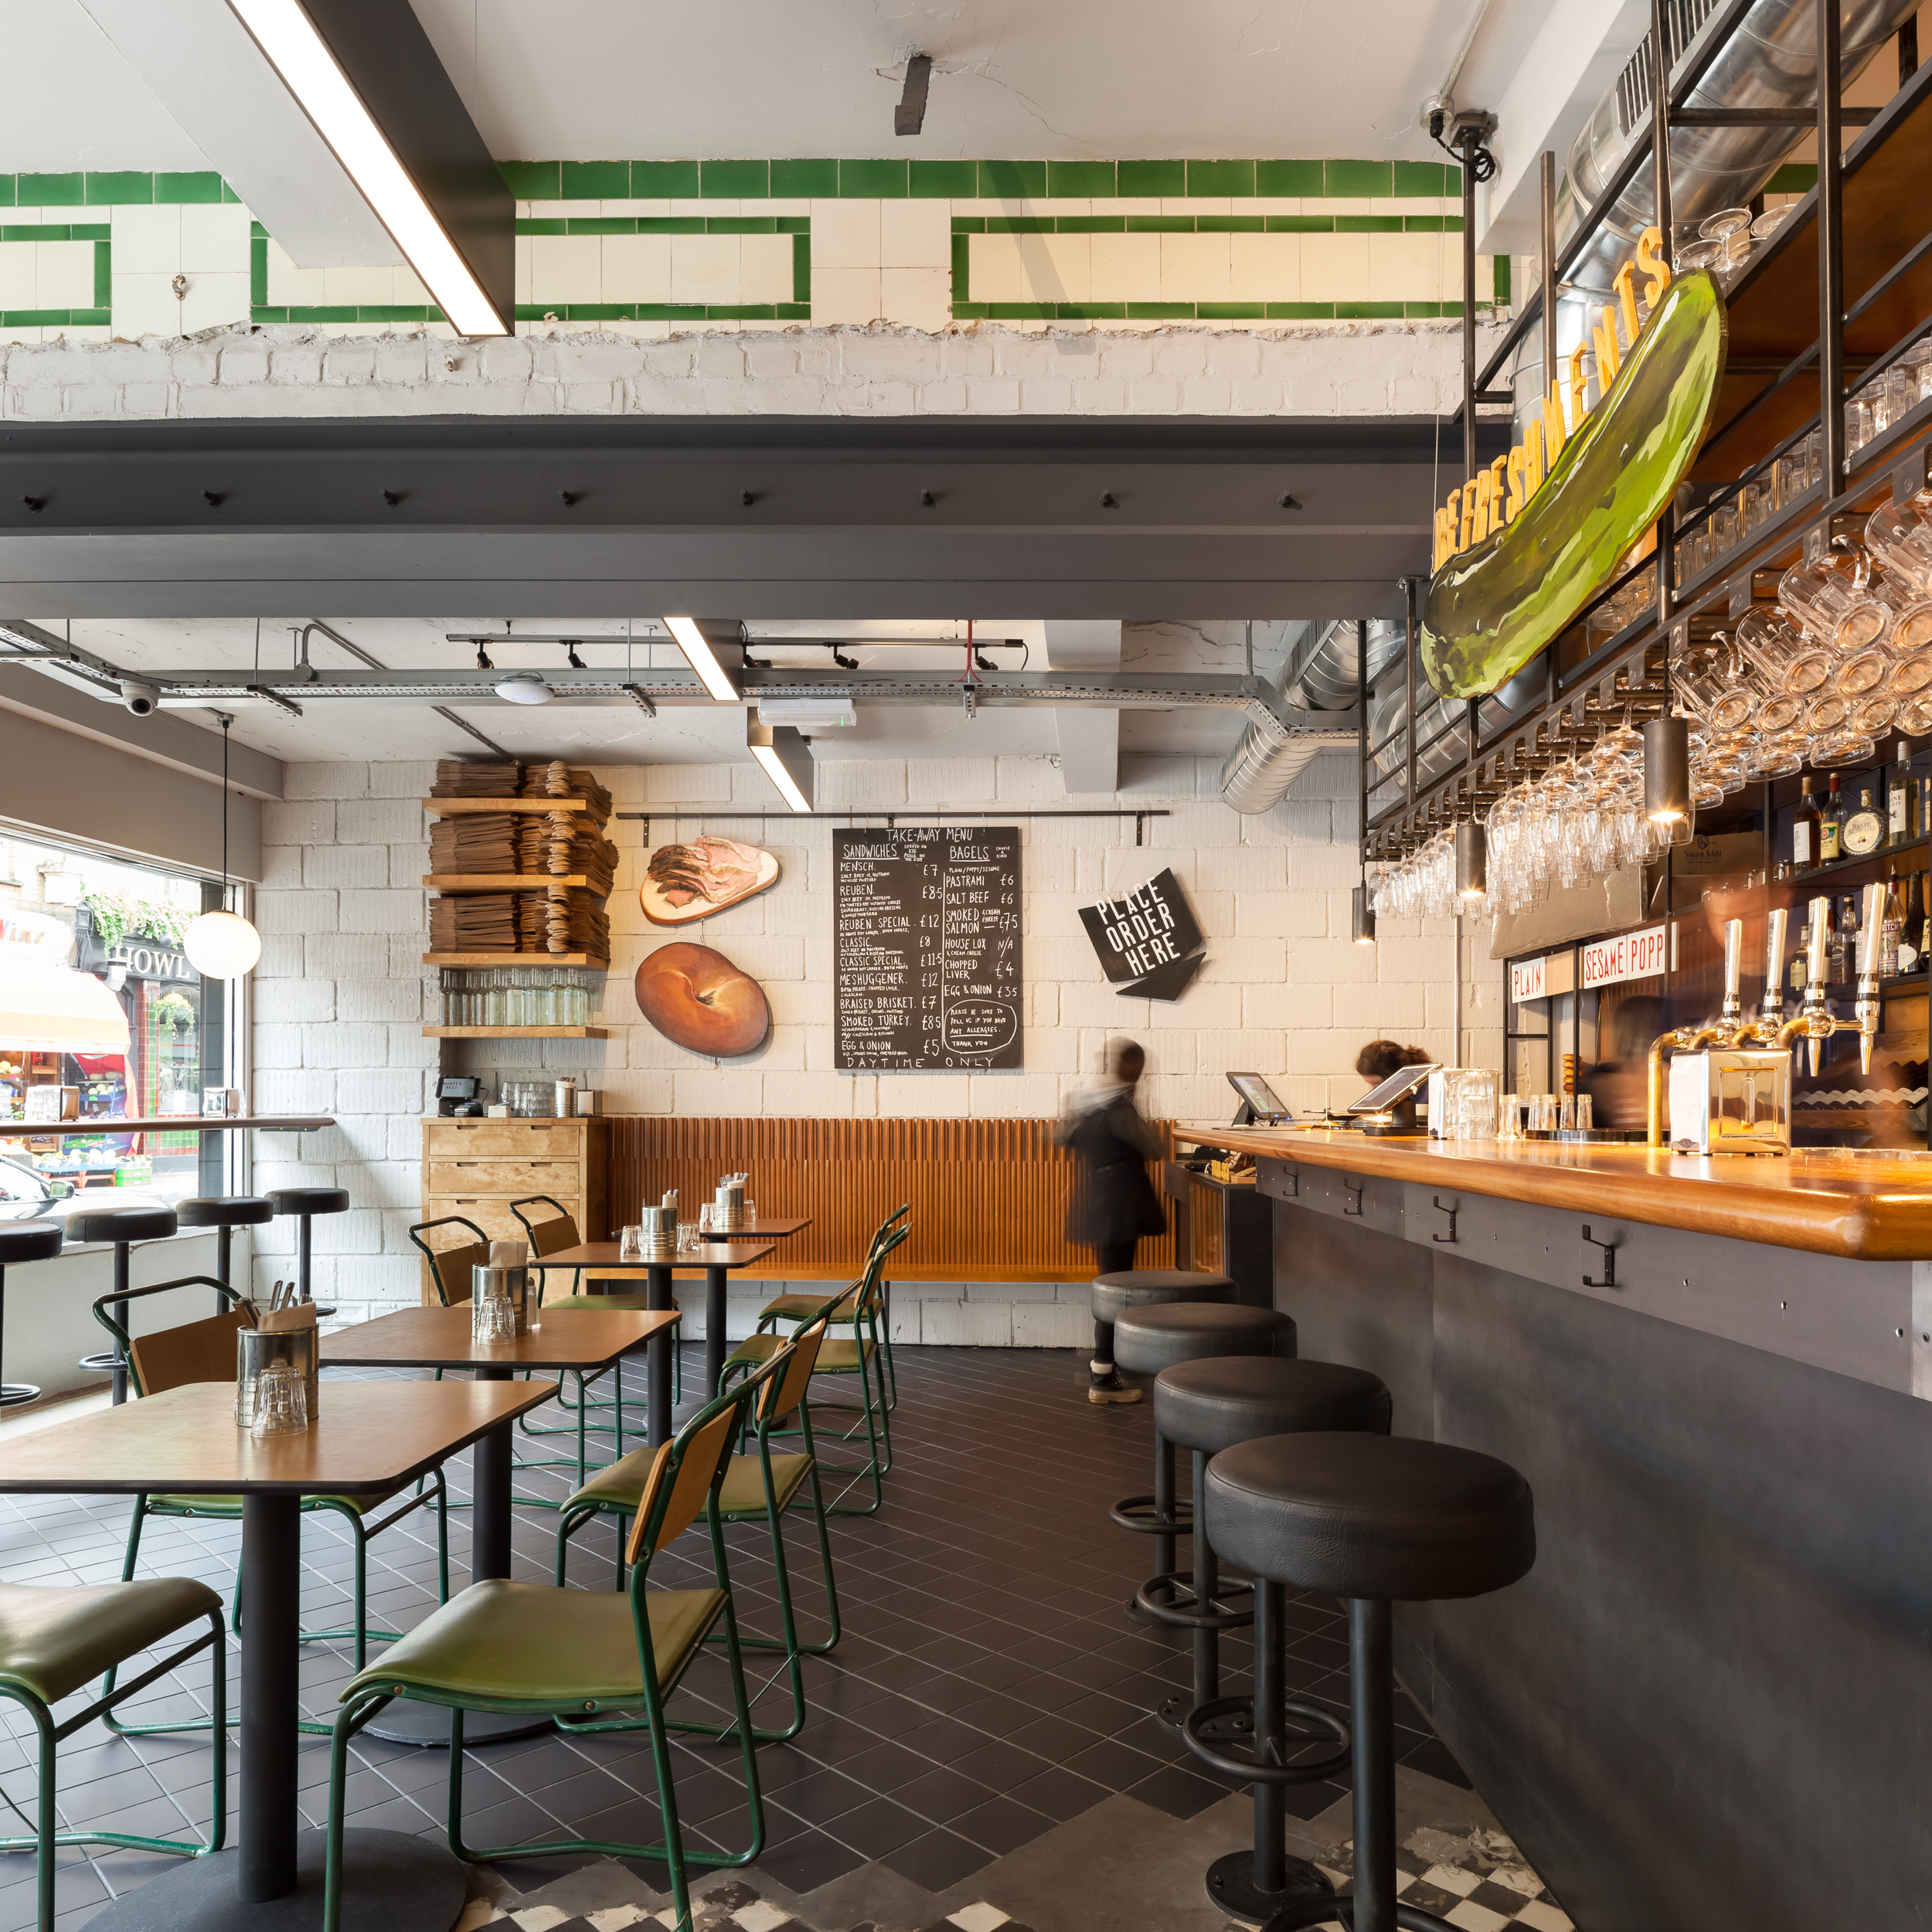 Pano_0357_0363-Edit - MATA_Architects_Montys_Deli.jpg